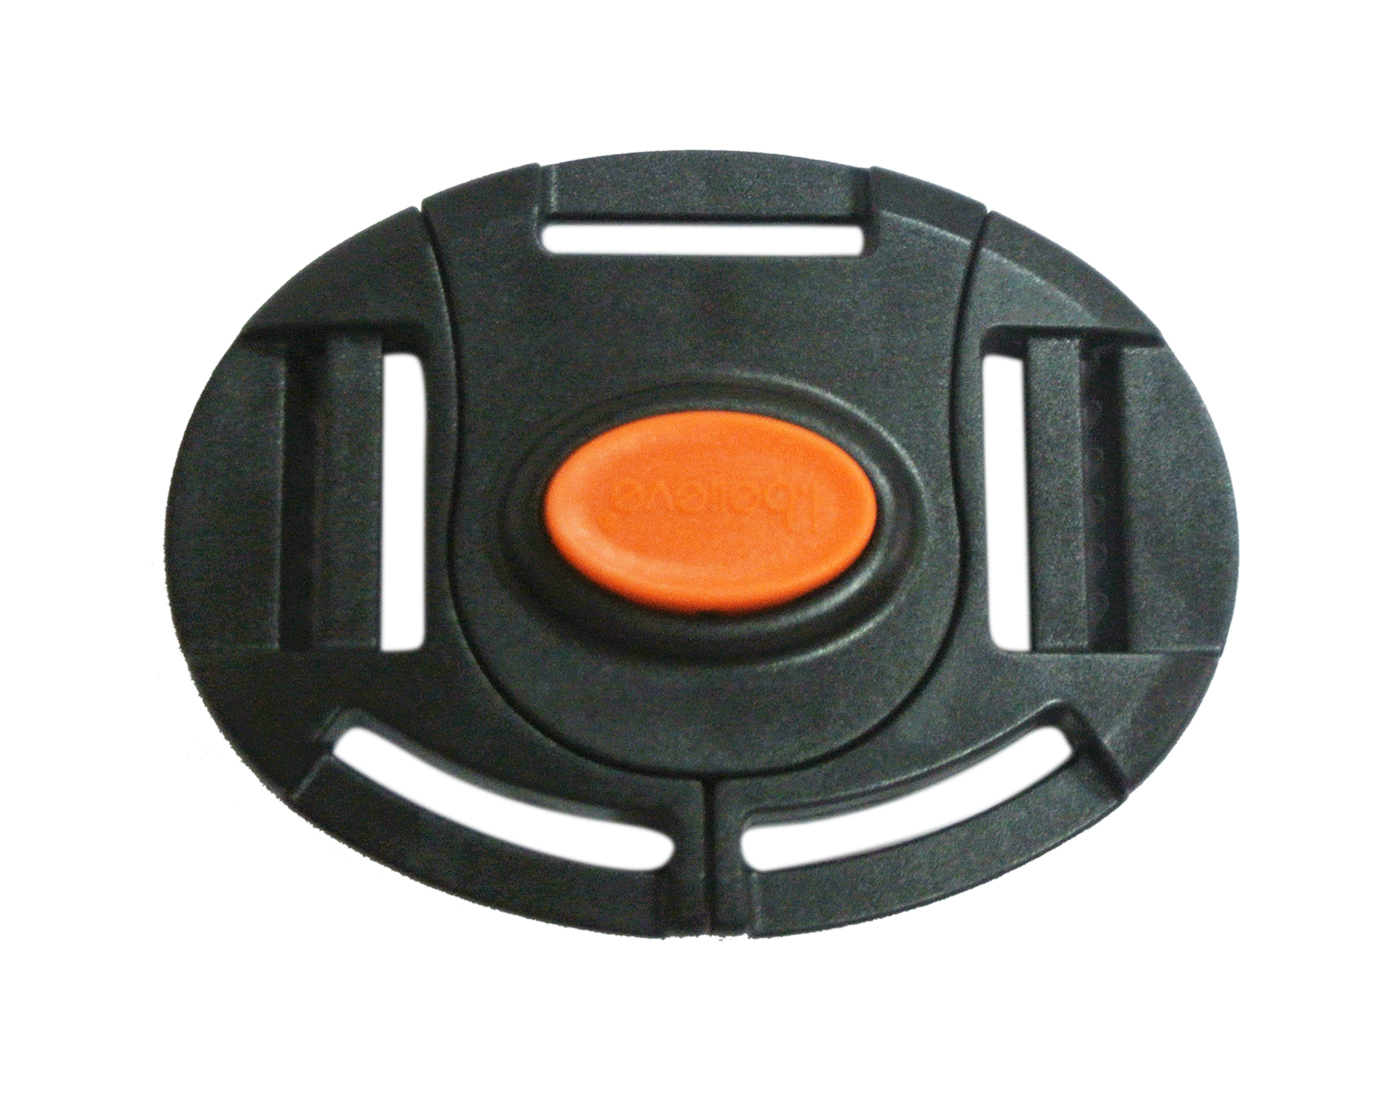 Made in China Adjustable High Quality Stroller Buckle OEM/ODM